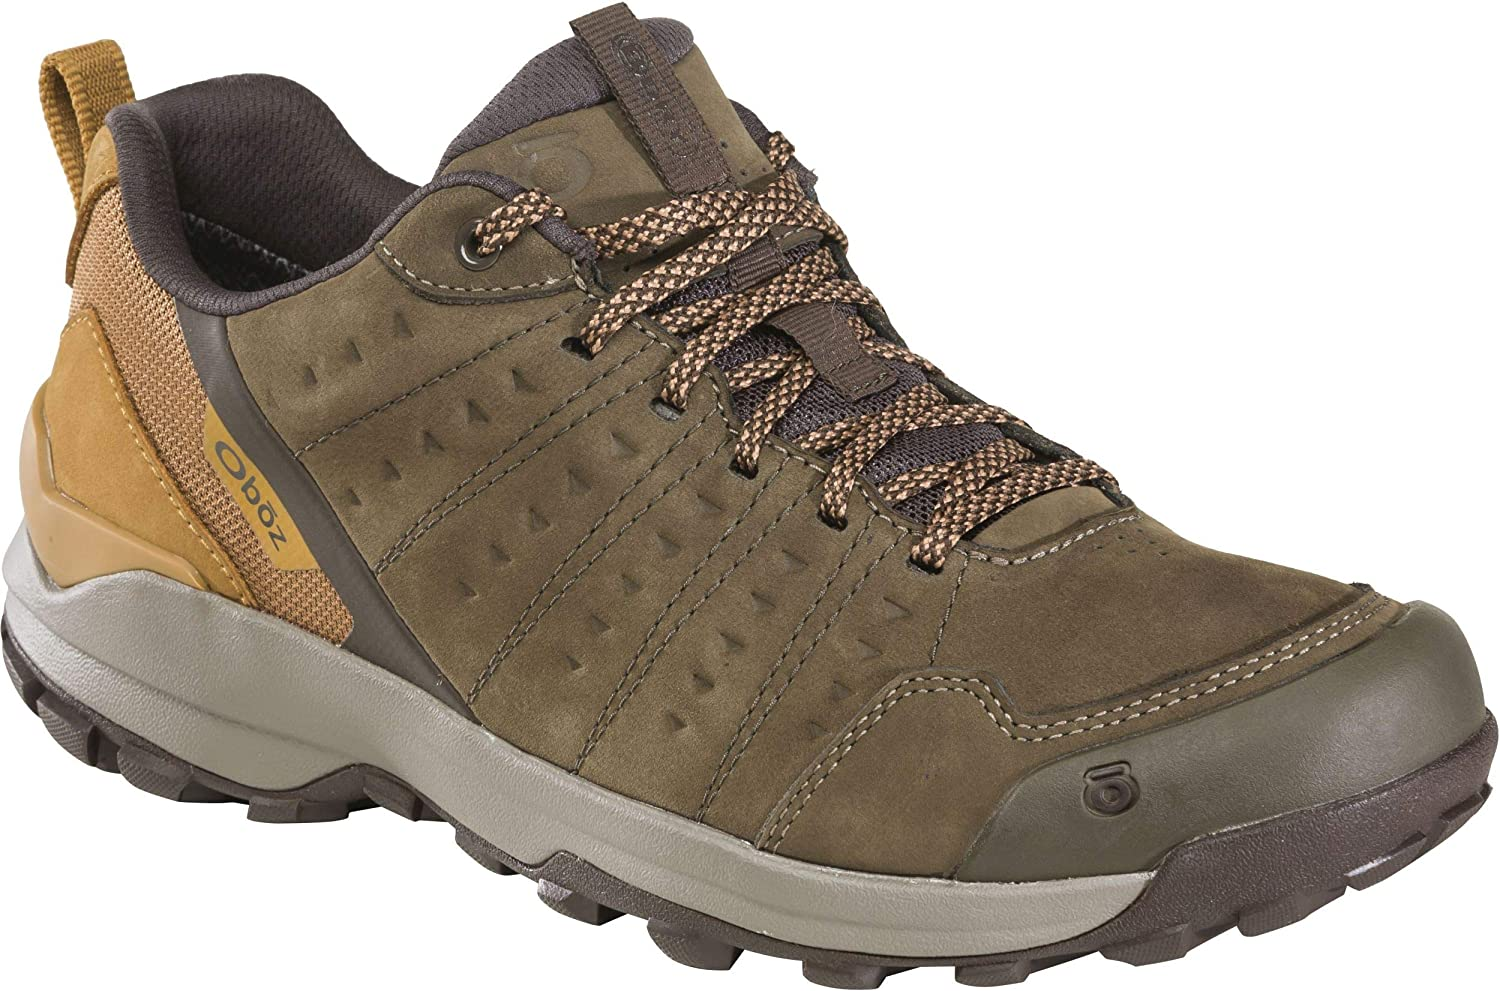 Oboz Sypes Shipping included Low Leather B-Dry Max 61% OFF - Hiking Shoe Men's